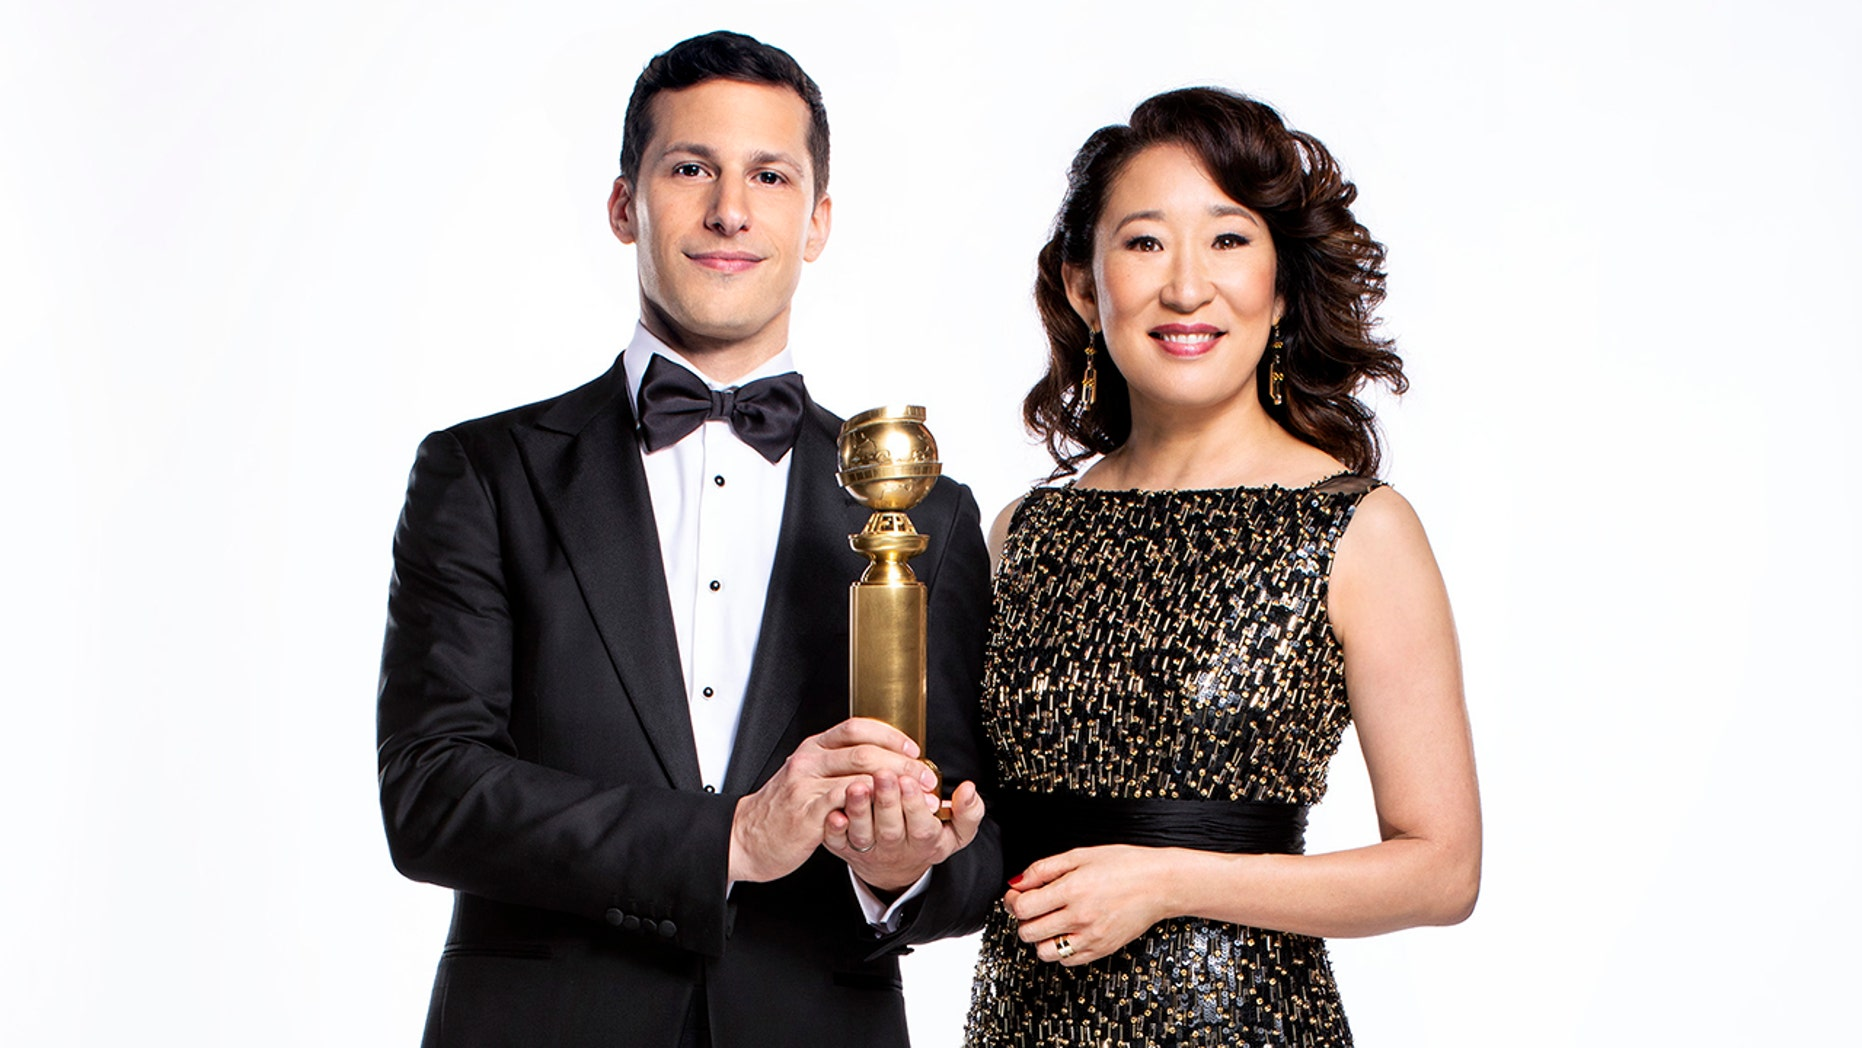 Sandra Oh, Andy Samberg want lighter tone at Golden Globes